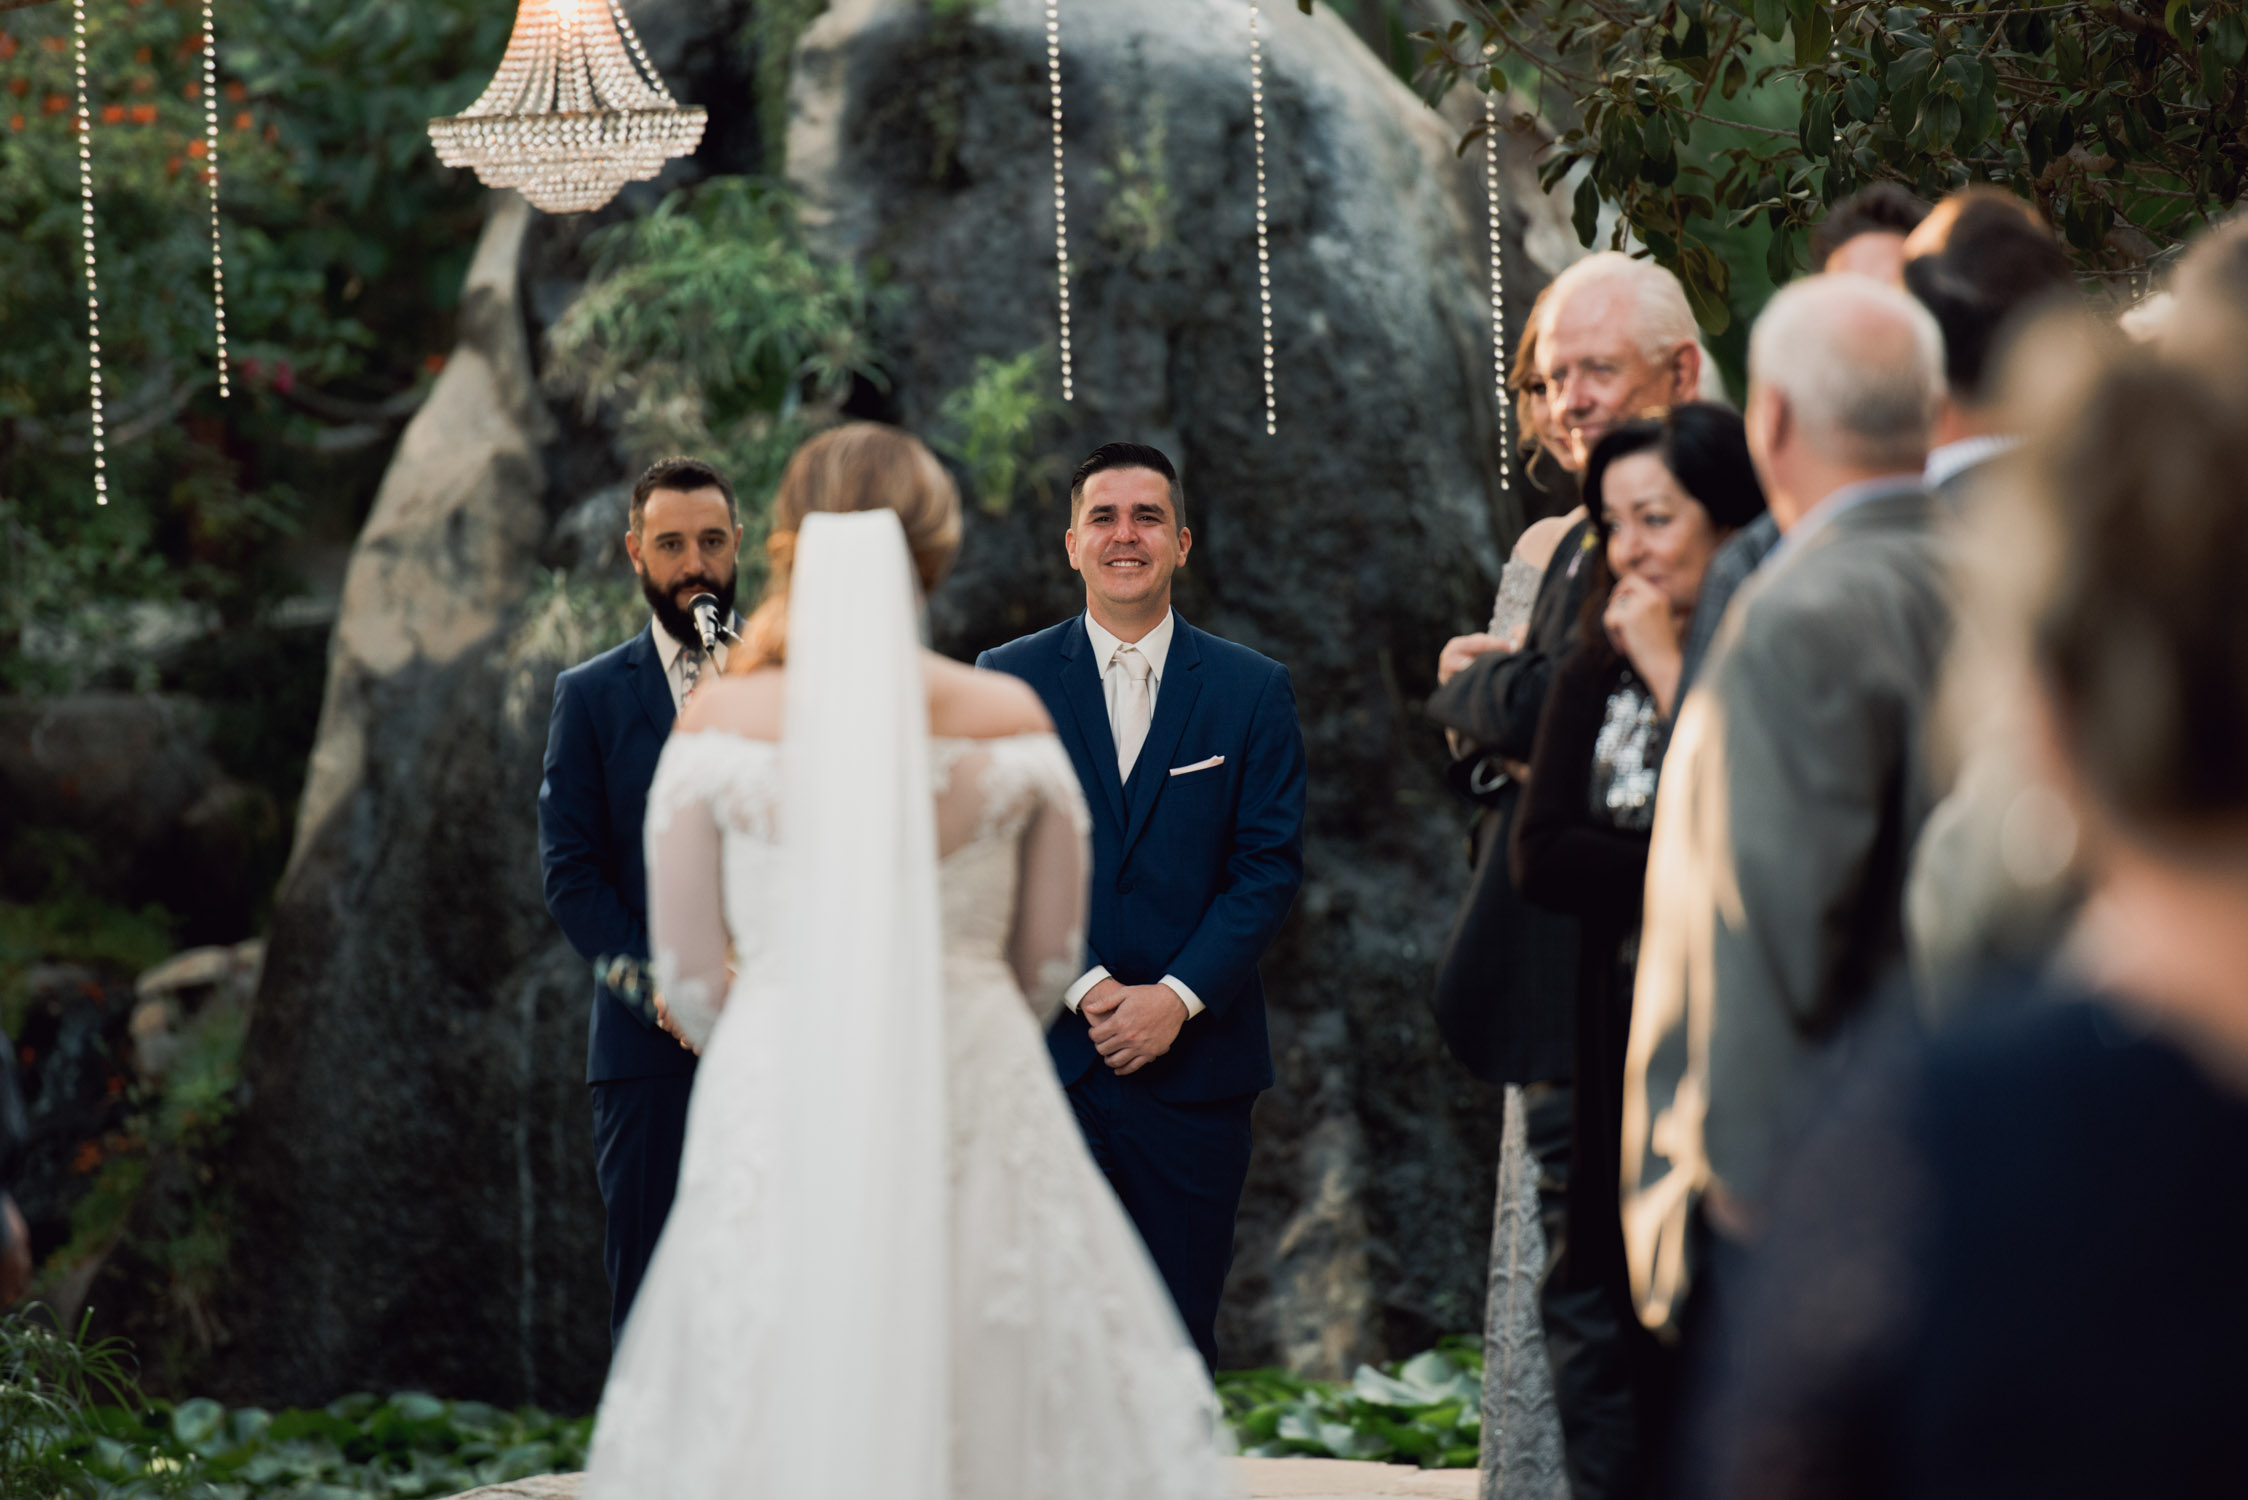 181103_Costa-wedding_404_web.jpg